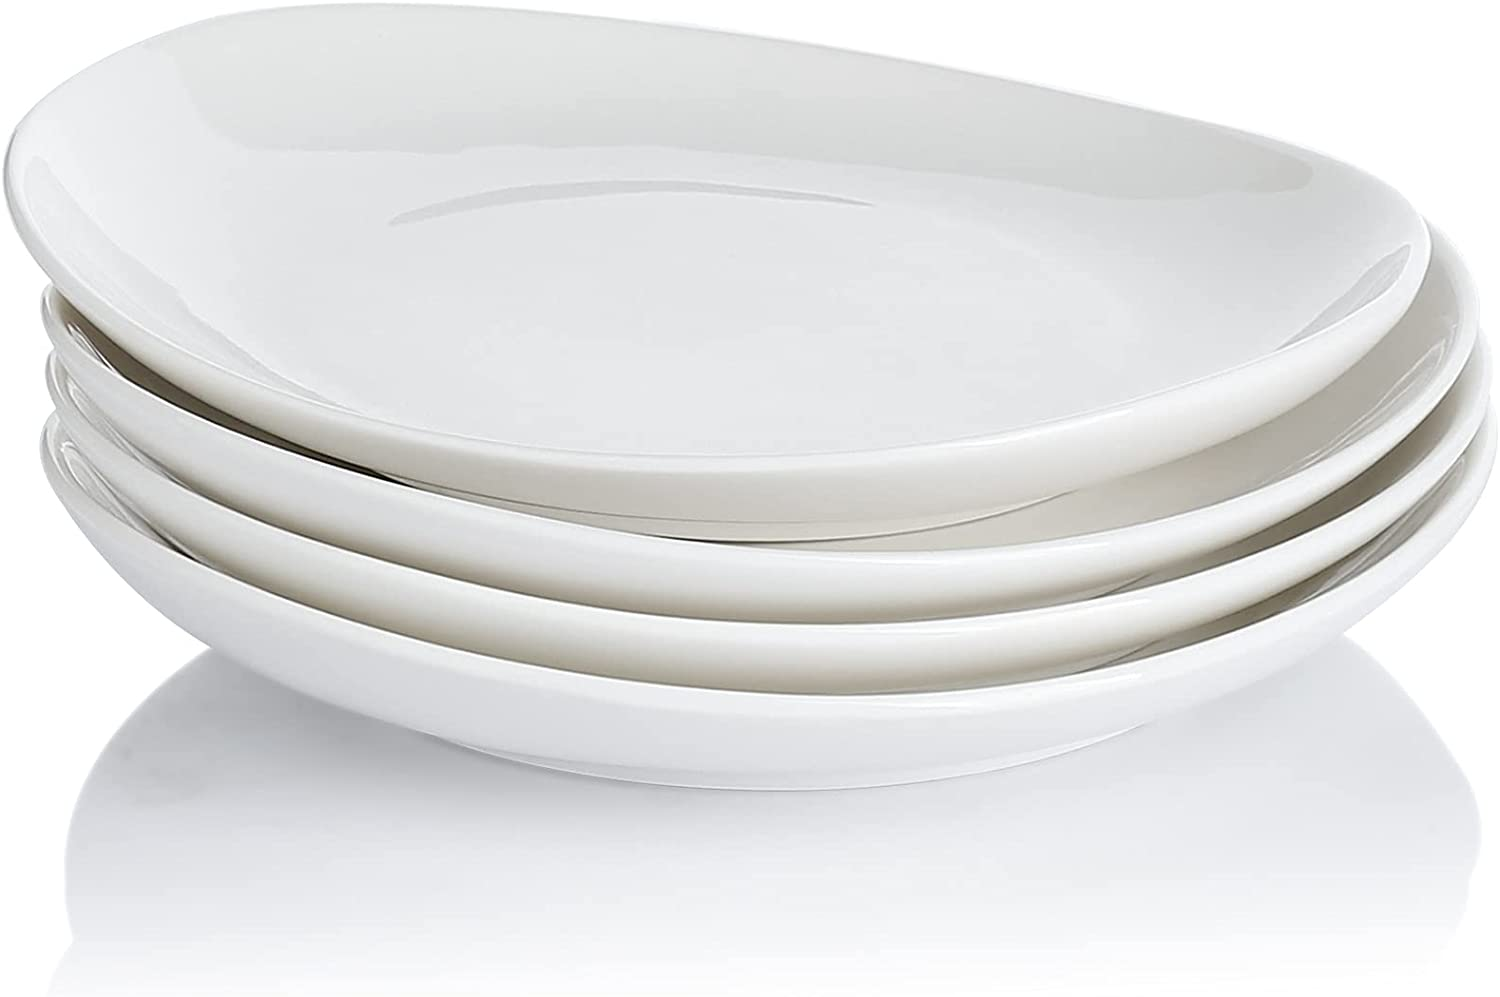 Sweese 151.401 Porcelain Dessert Salad Plates o 7.8 - Set Inch specialty Dallas Mall shop